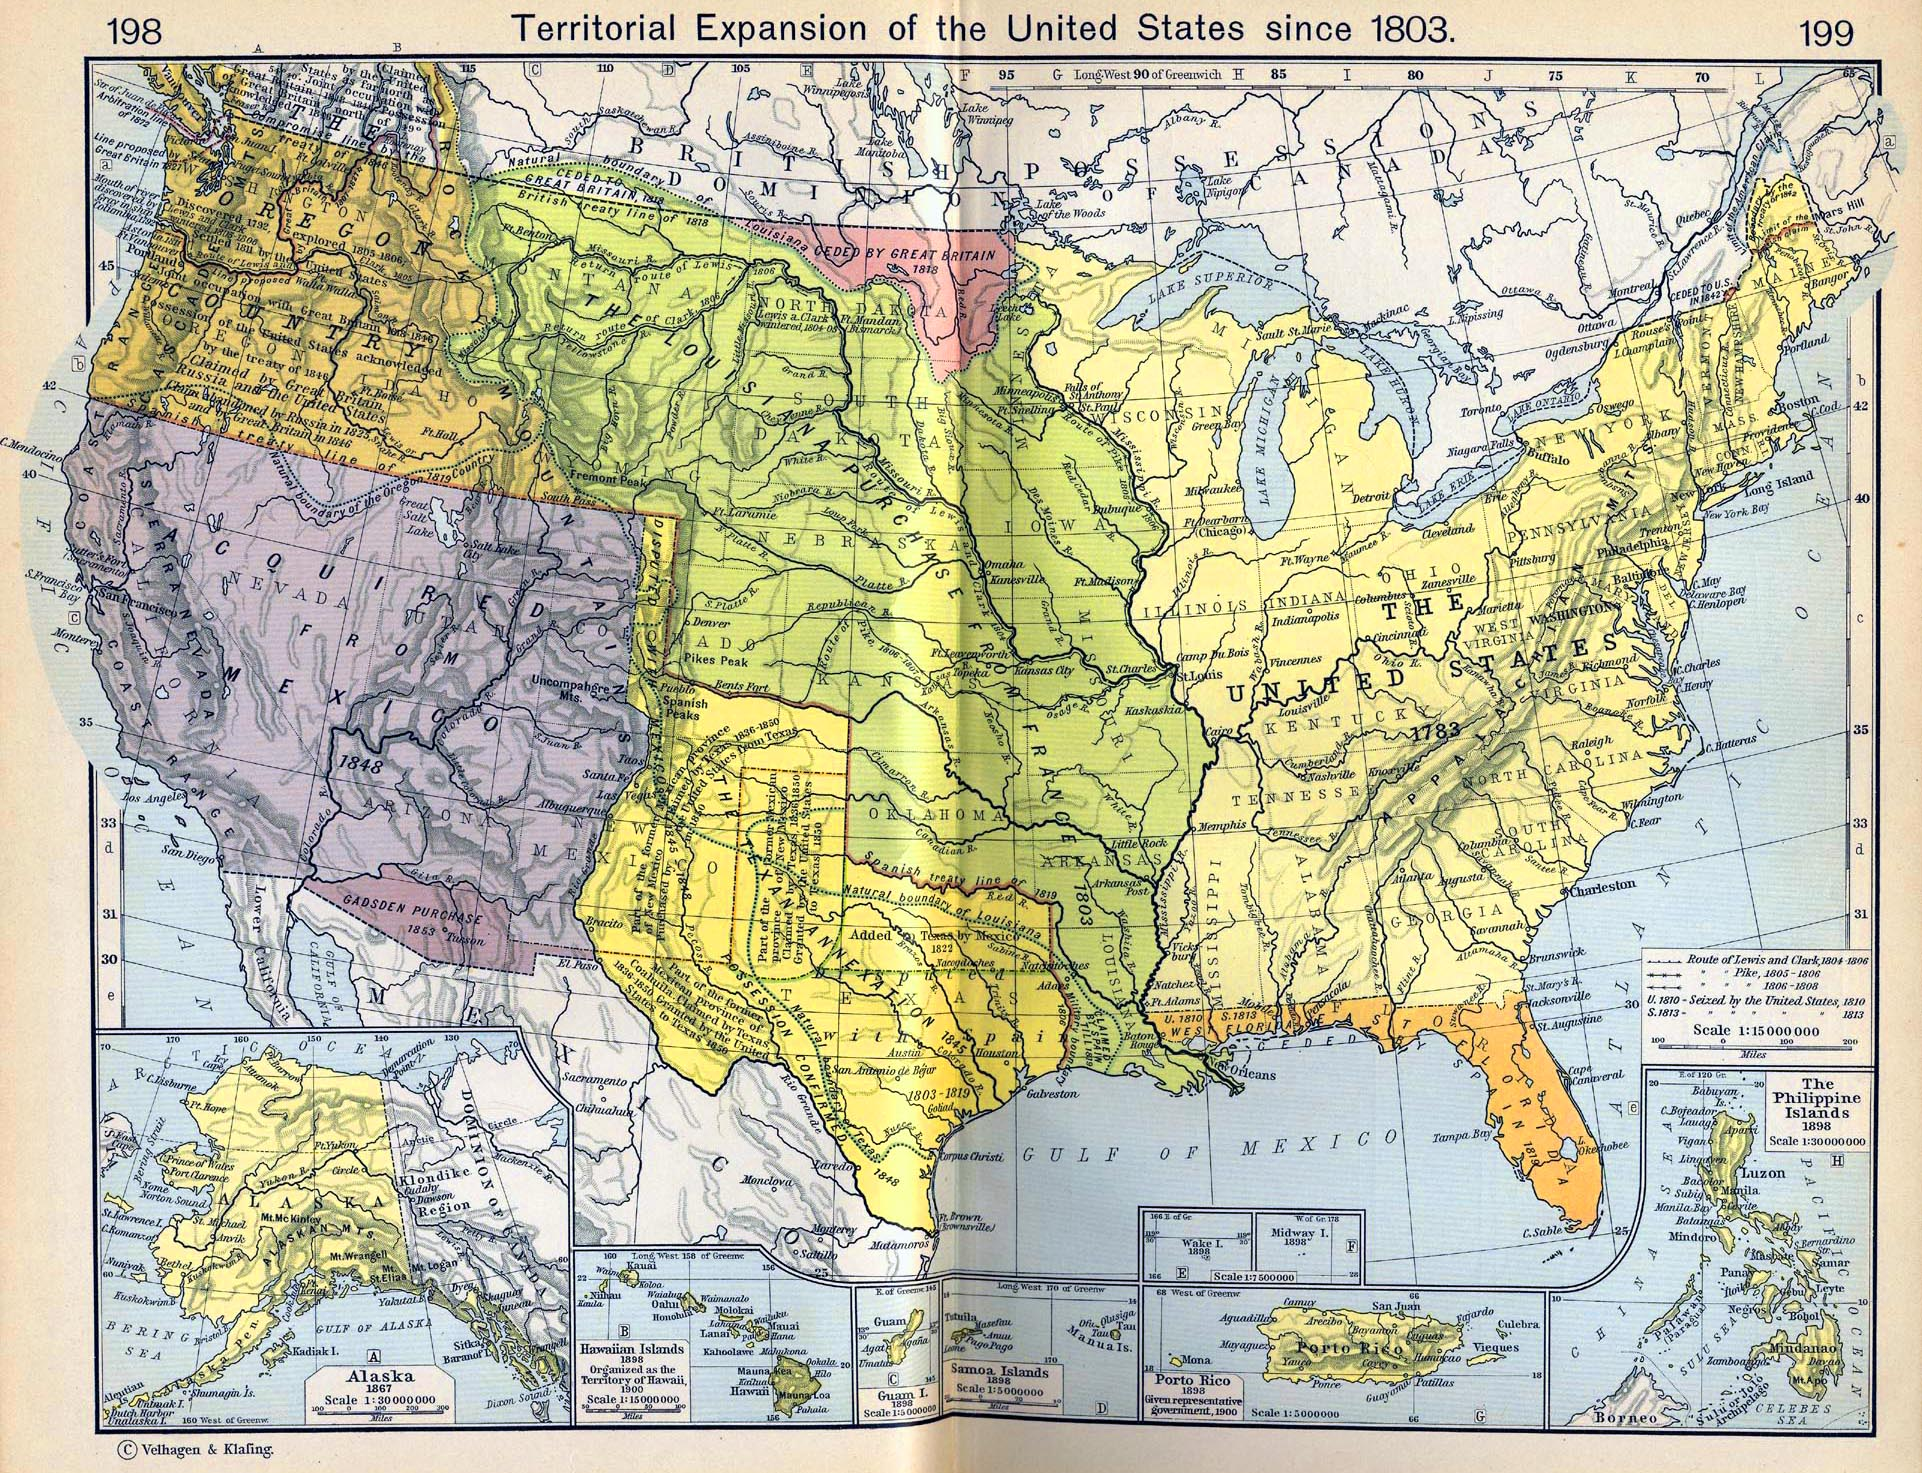 Map of the United States Expansion since 1803